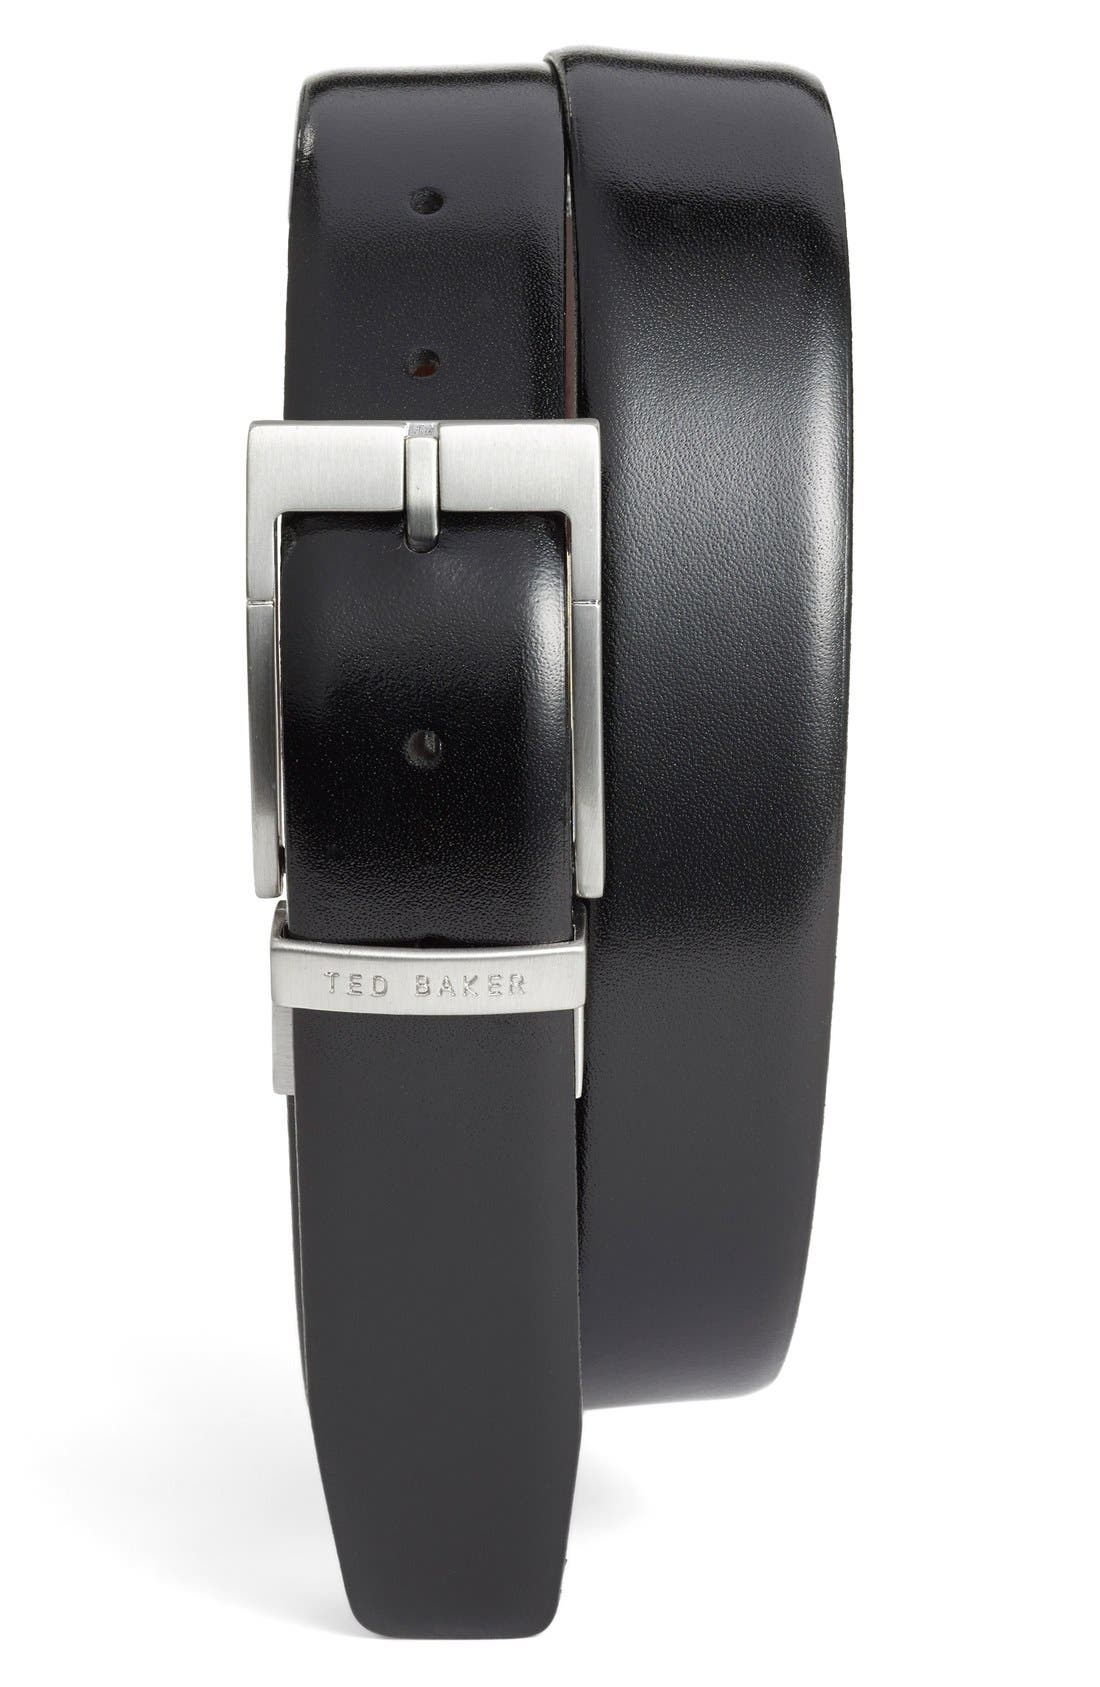 TED BAKER LONDON, Reversible Leather Belt, Main thumbnail 1, color, BLACK/ DARK BROWN